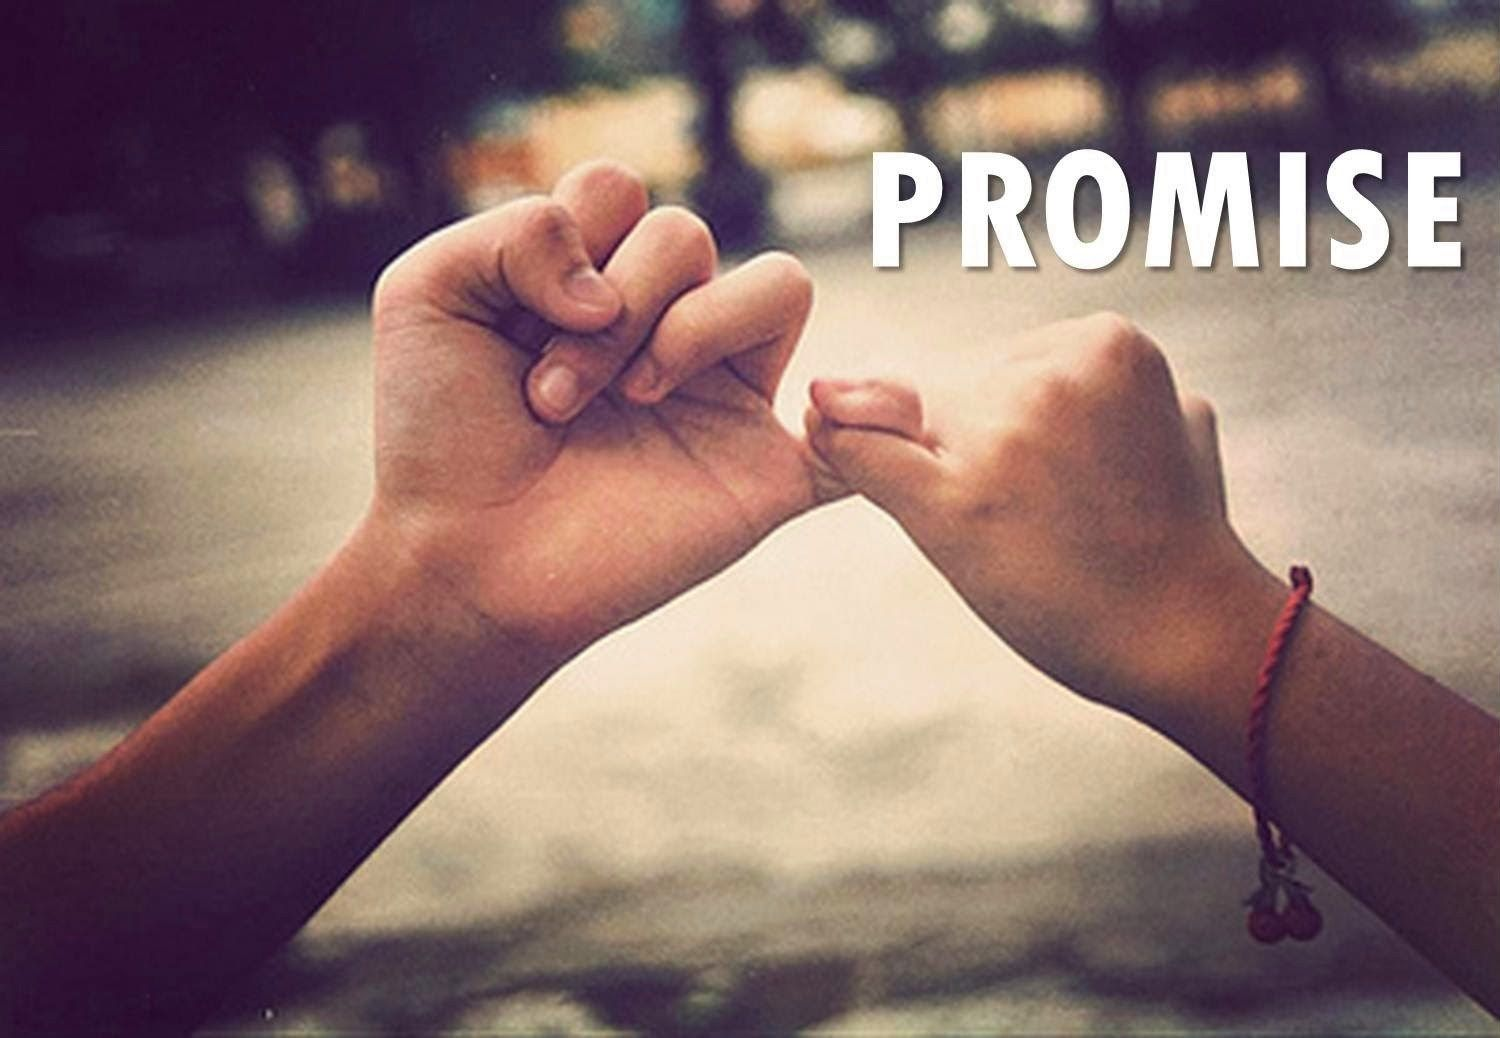 41 Wonderful Promise Day Pictures, Image, Gifs & Wallpapers